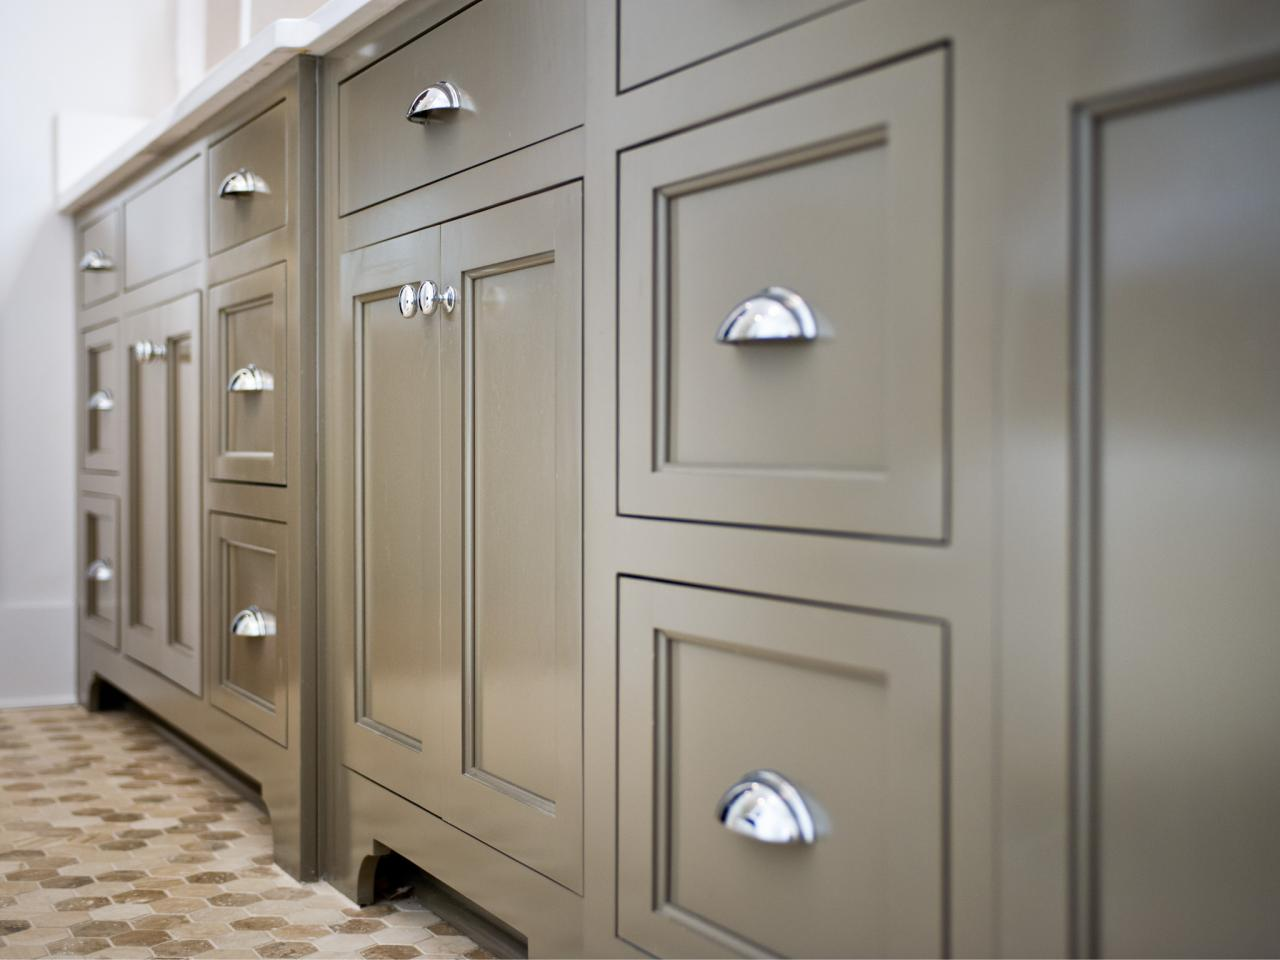 Warm Paint Colors For Kitchens Pictures Ideas From Hgtv: Contemporary Gray Vanity Cabinets In Master Bathroom